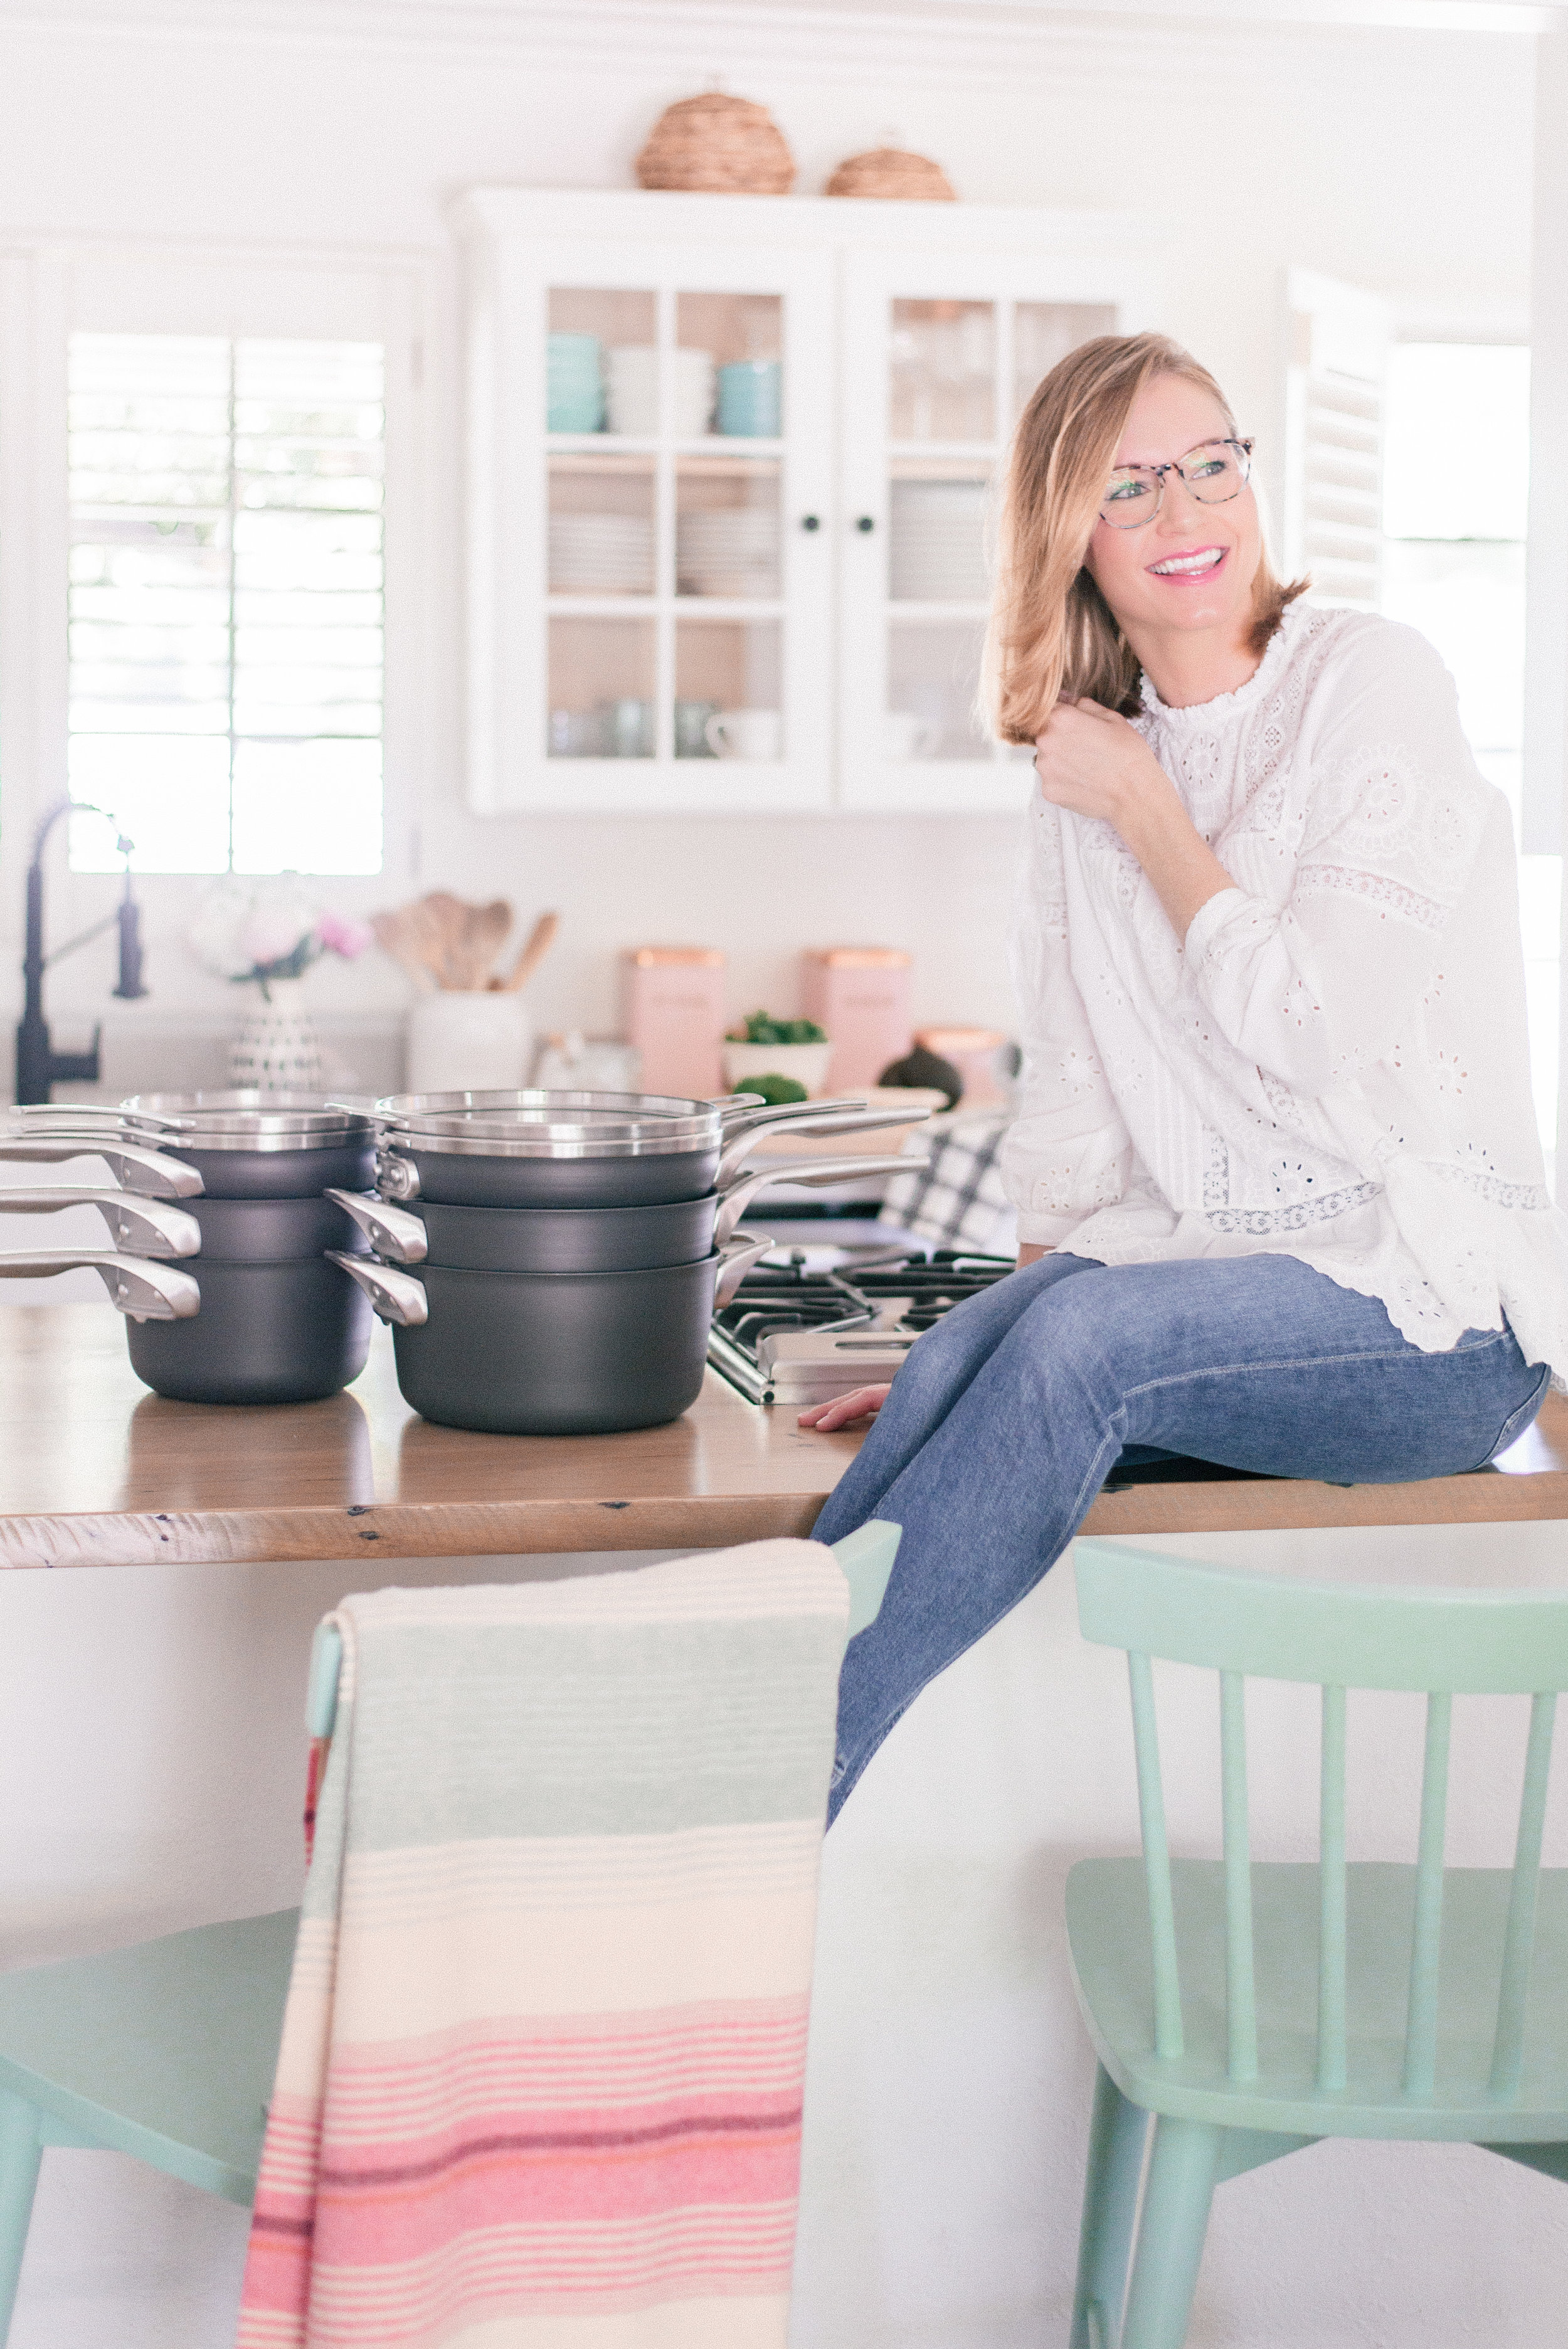 The Best Nonstick Cookware Sets with Calphalon and Bed Bath & Beyond featured by top U.S. Lifestyle blog Love + Specs: image of woman in white shirt sitting next to Calphalon pans in kitchen